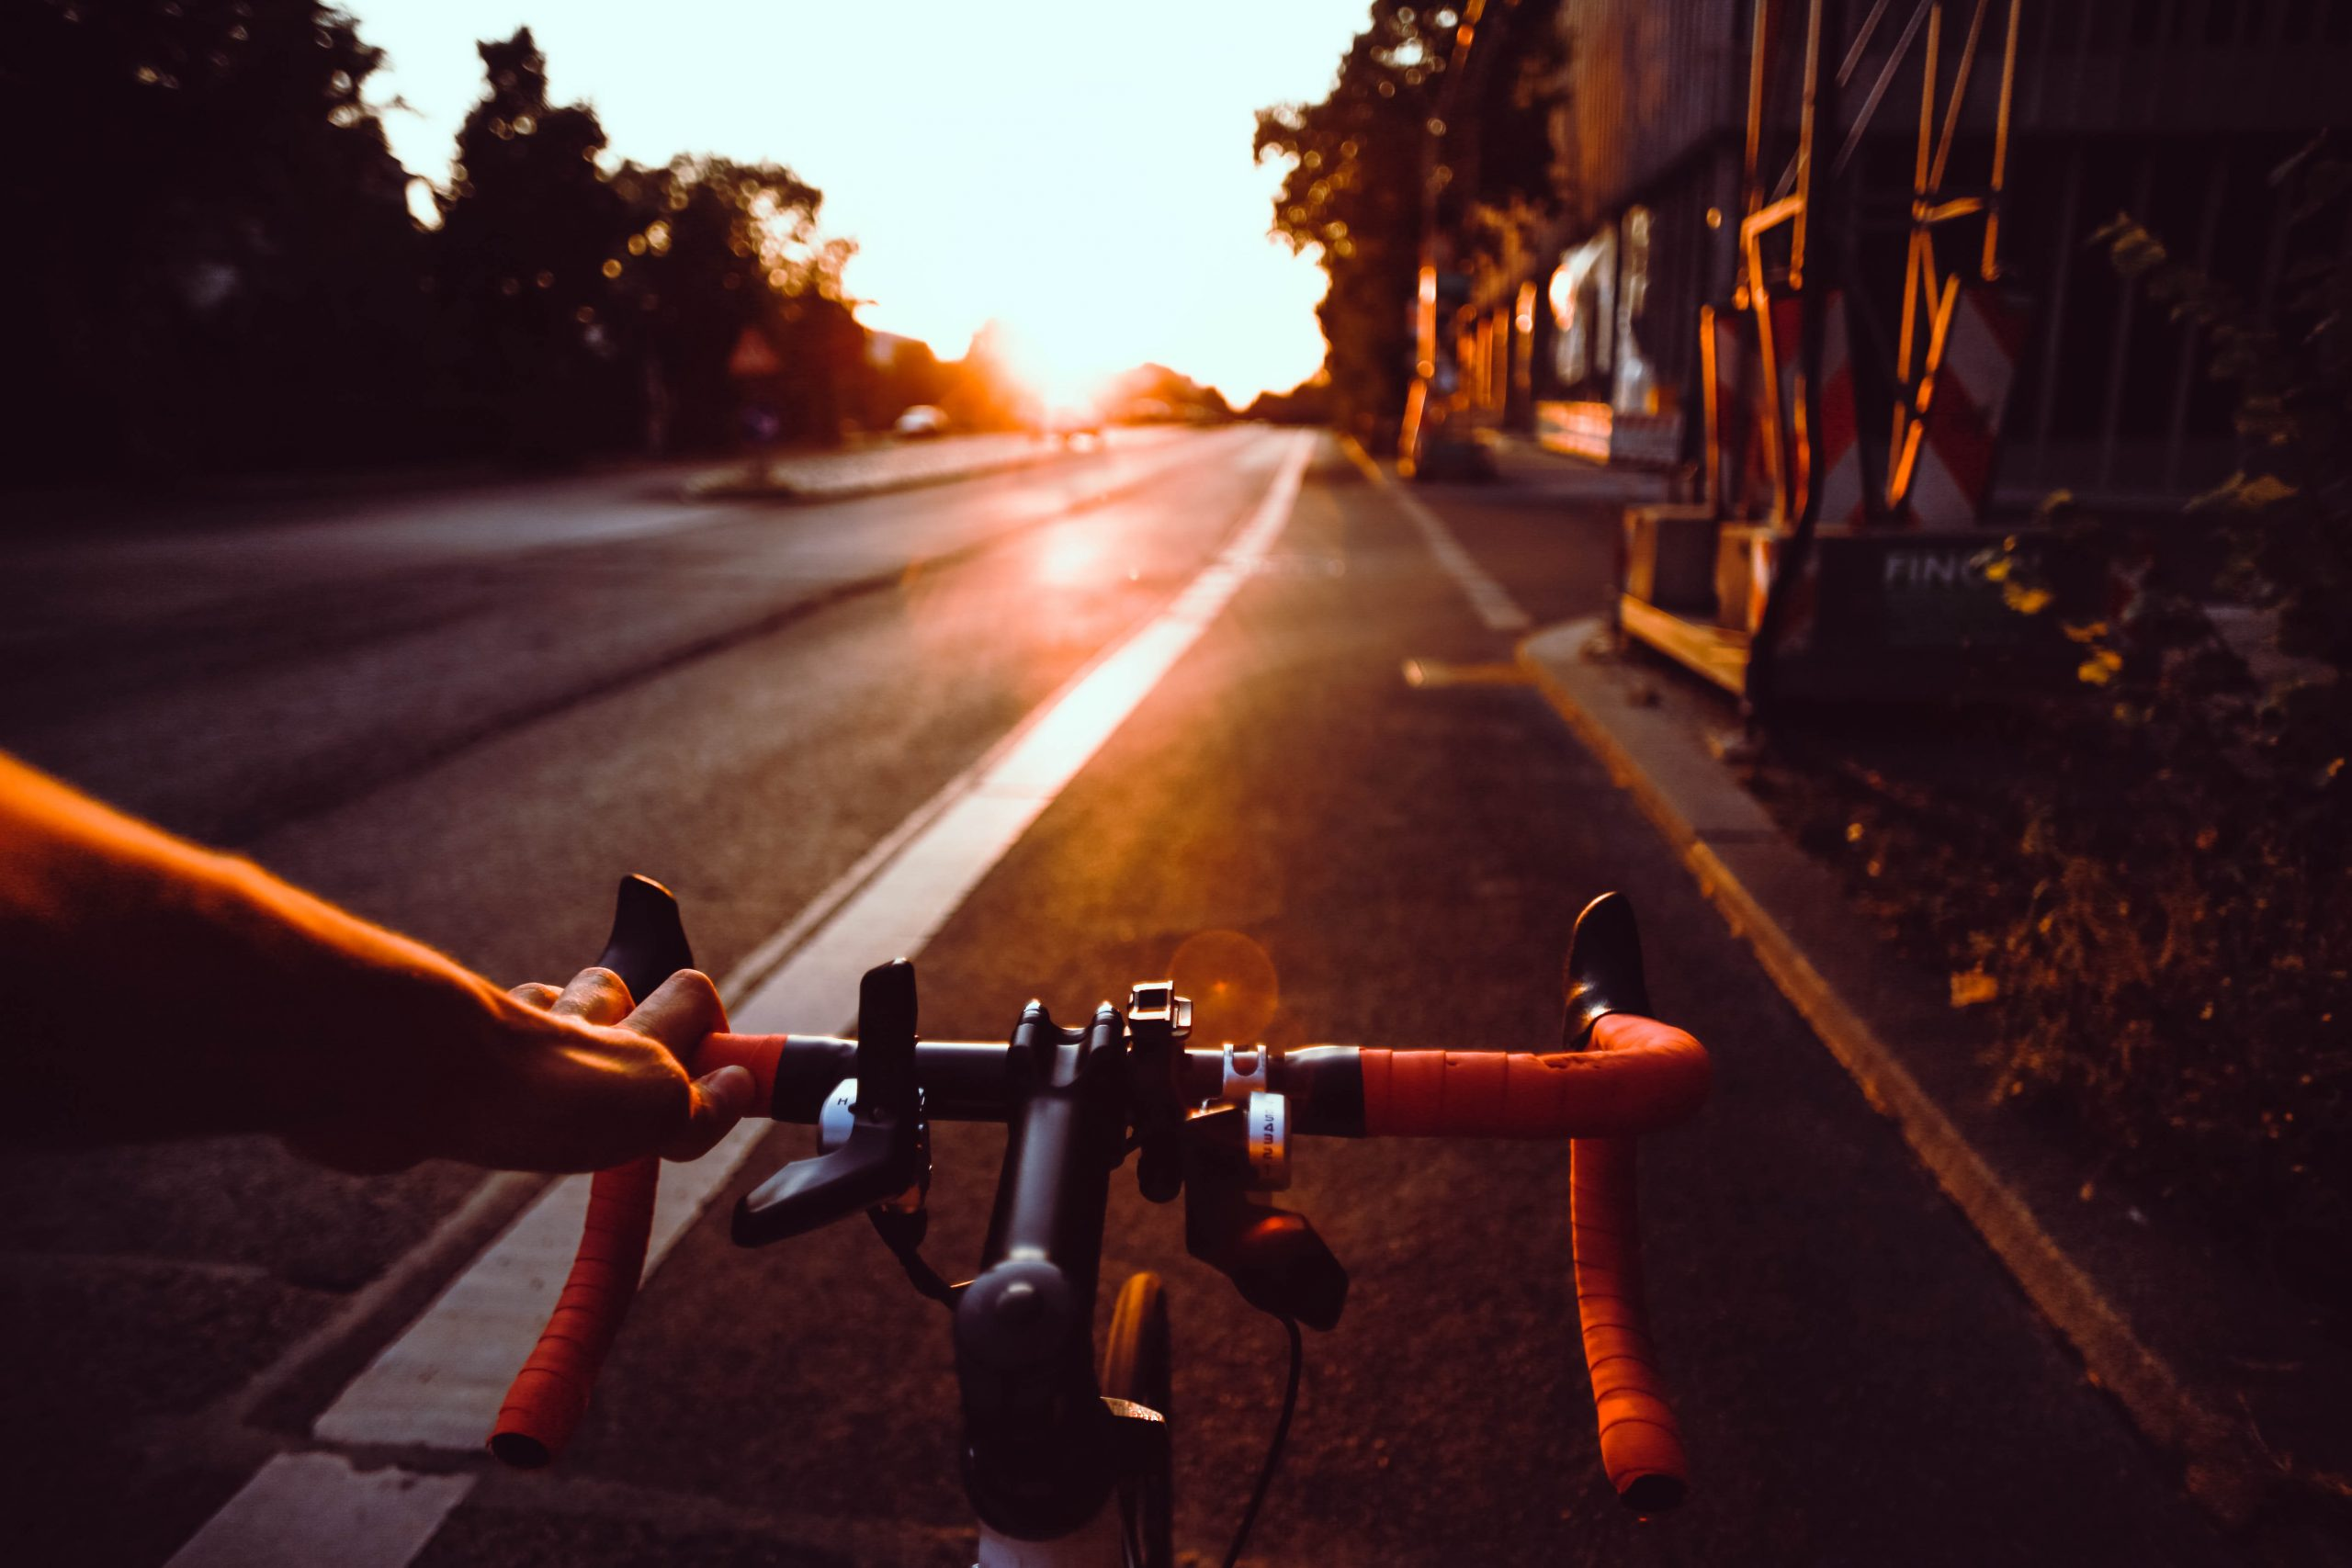 Cycling down a road